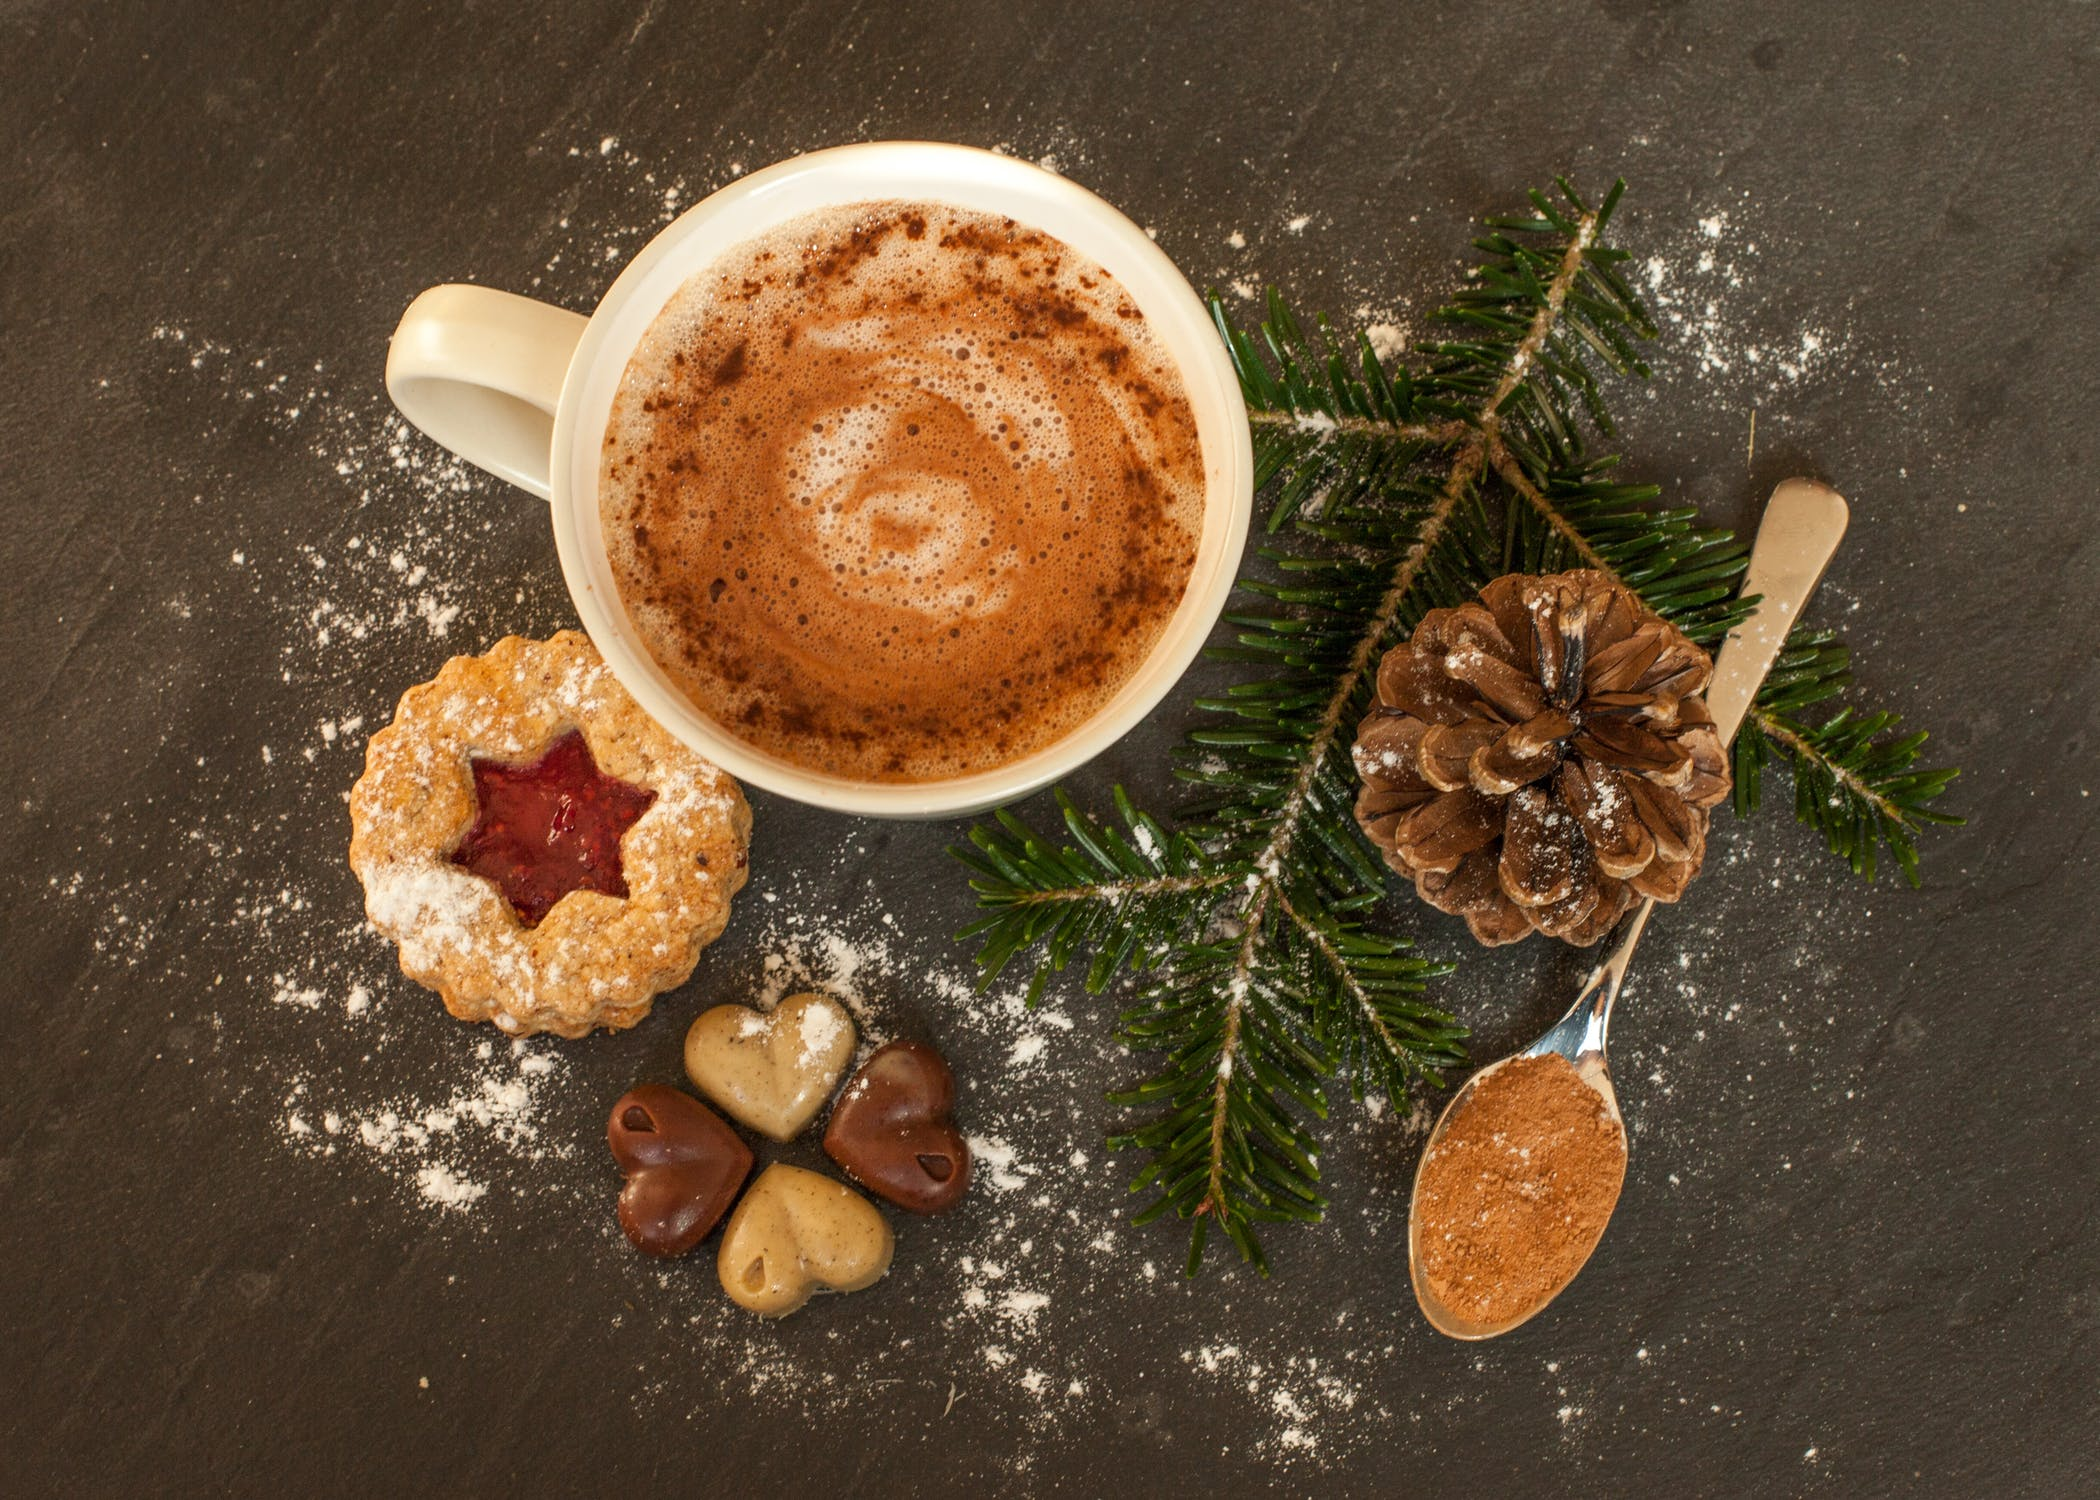 Coffee and Christmas cookies with greenery